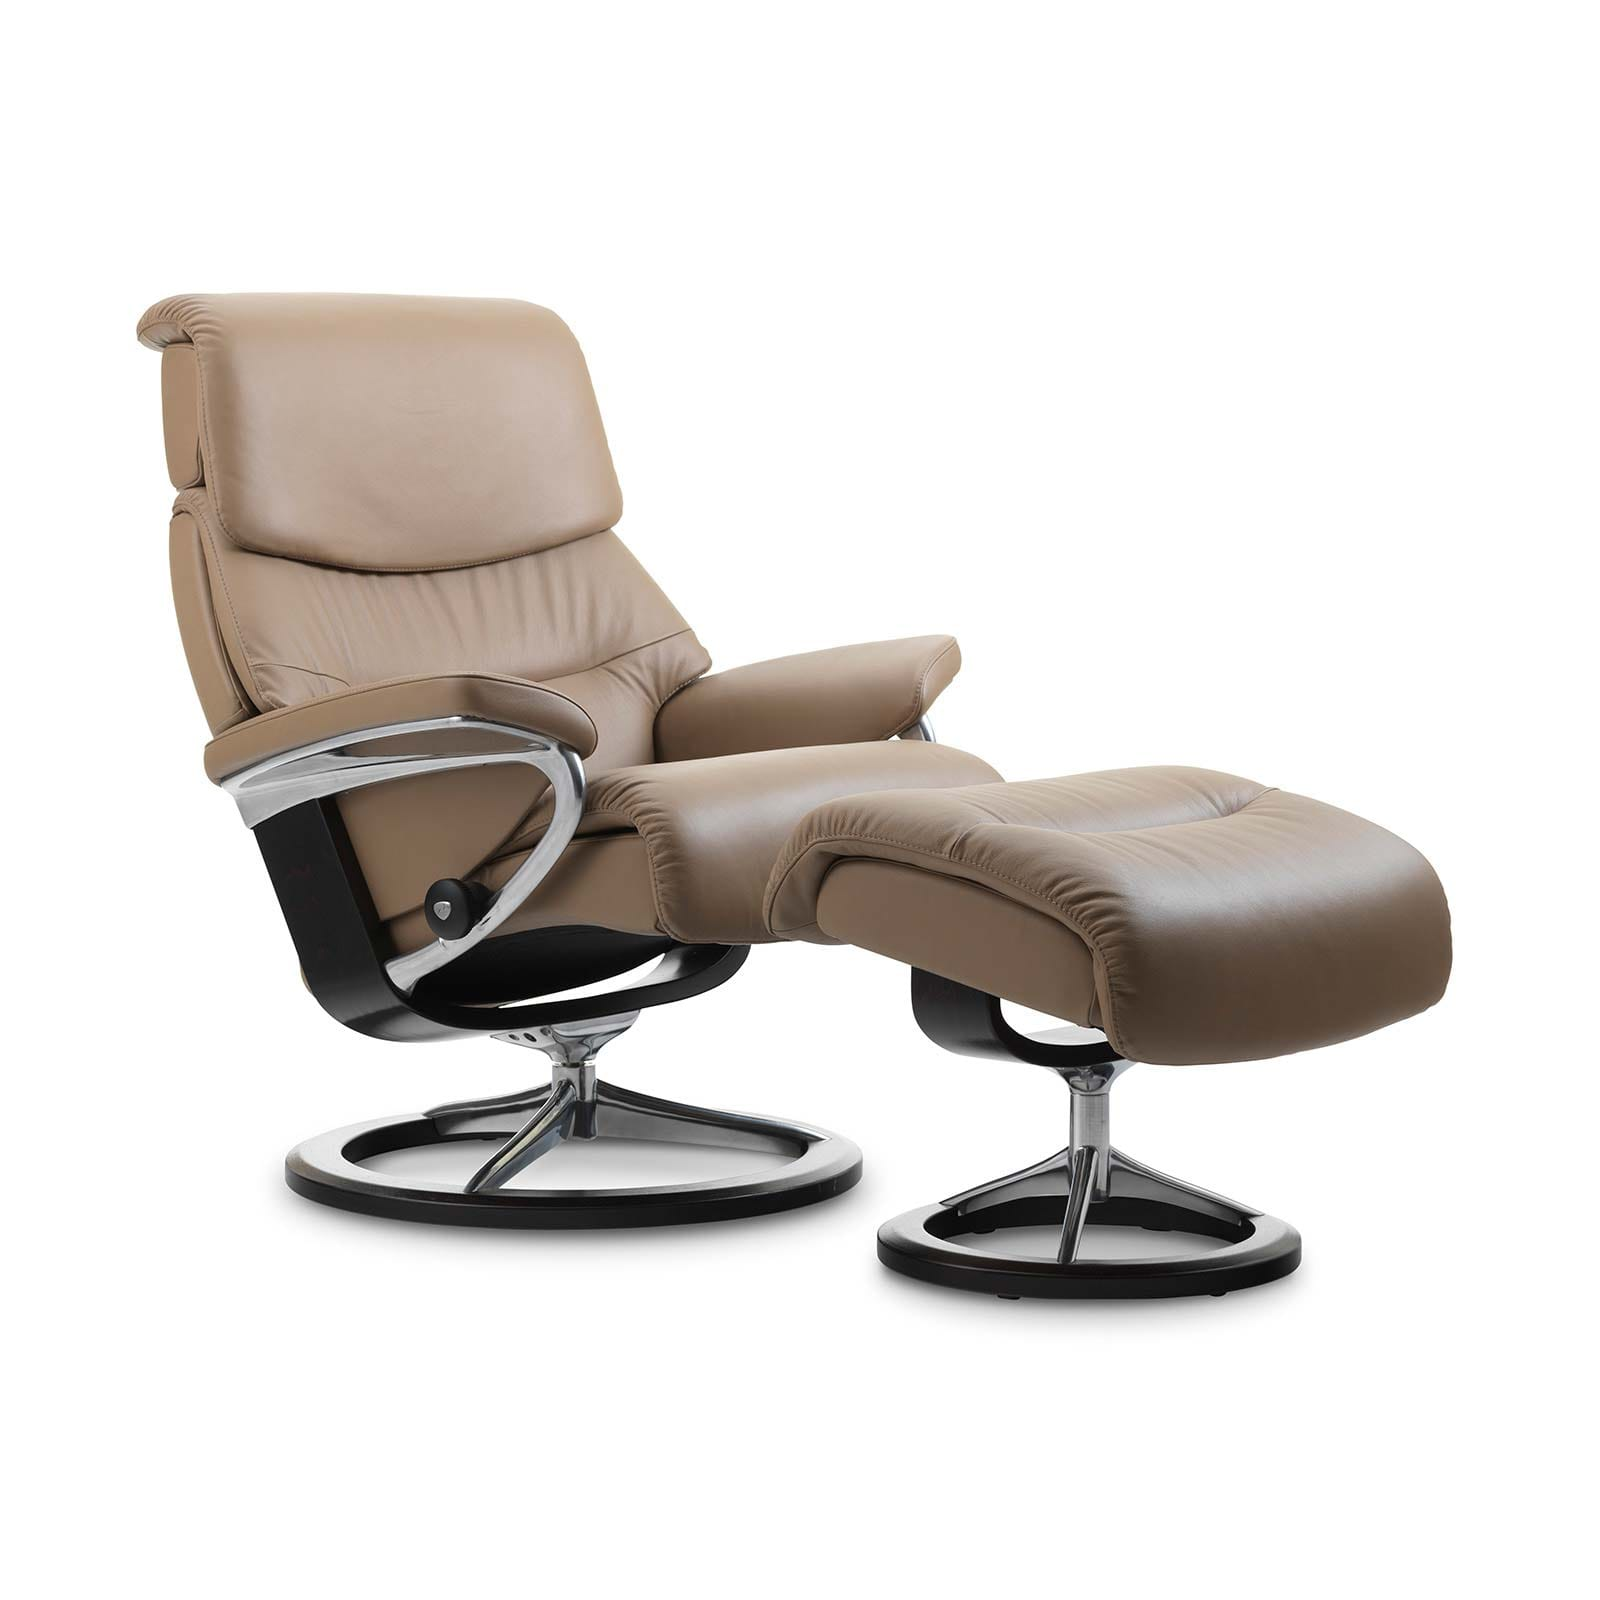 Stressless Sessel Berlin Stressless Capri S Paloma Funghi Ohne Hocker House Of